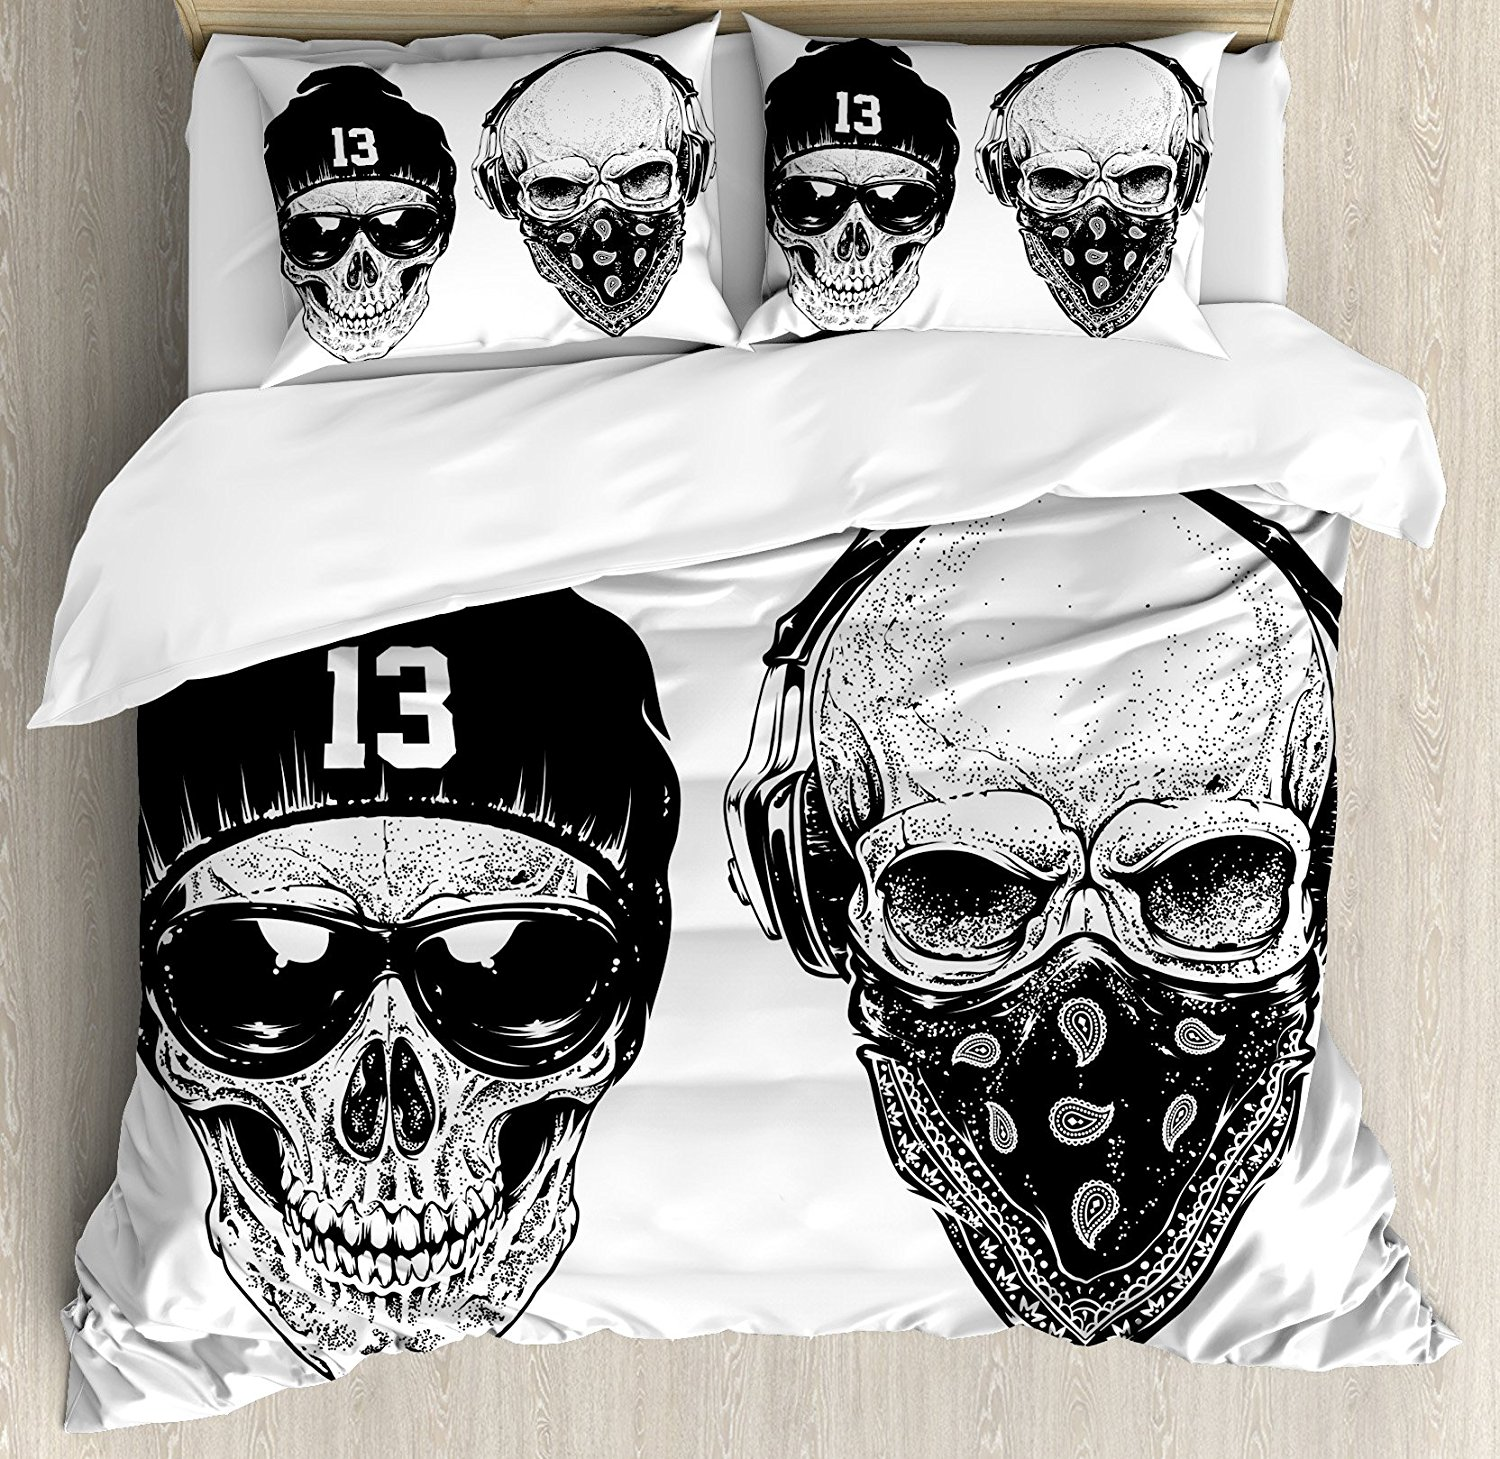 Duvet Cover Set, Funny Skull Band Dead Street Gangs with Bandanna Hood Rapper Style Grunge Print, 4 Piece Bedding Set